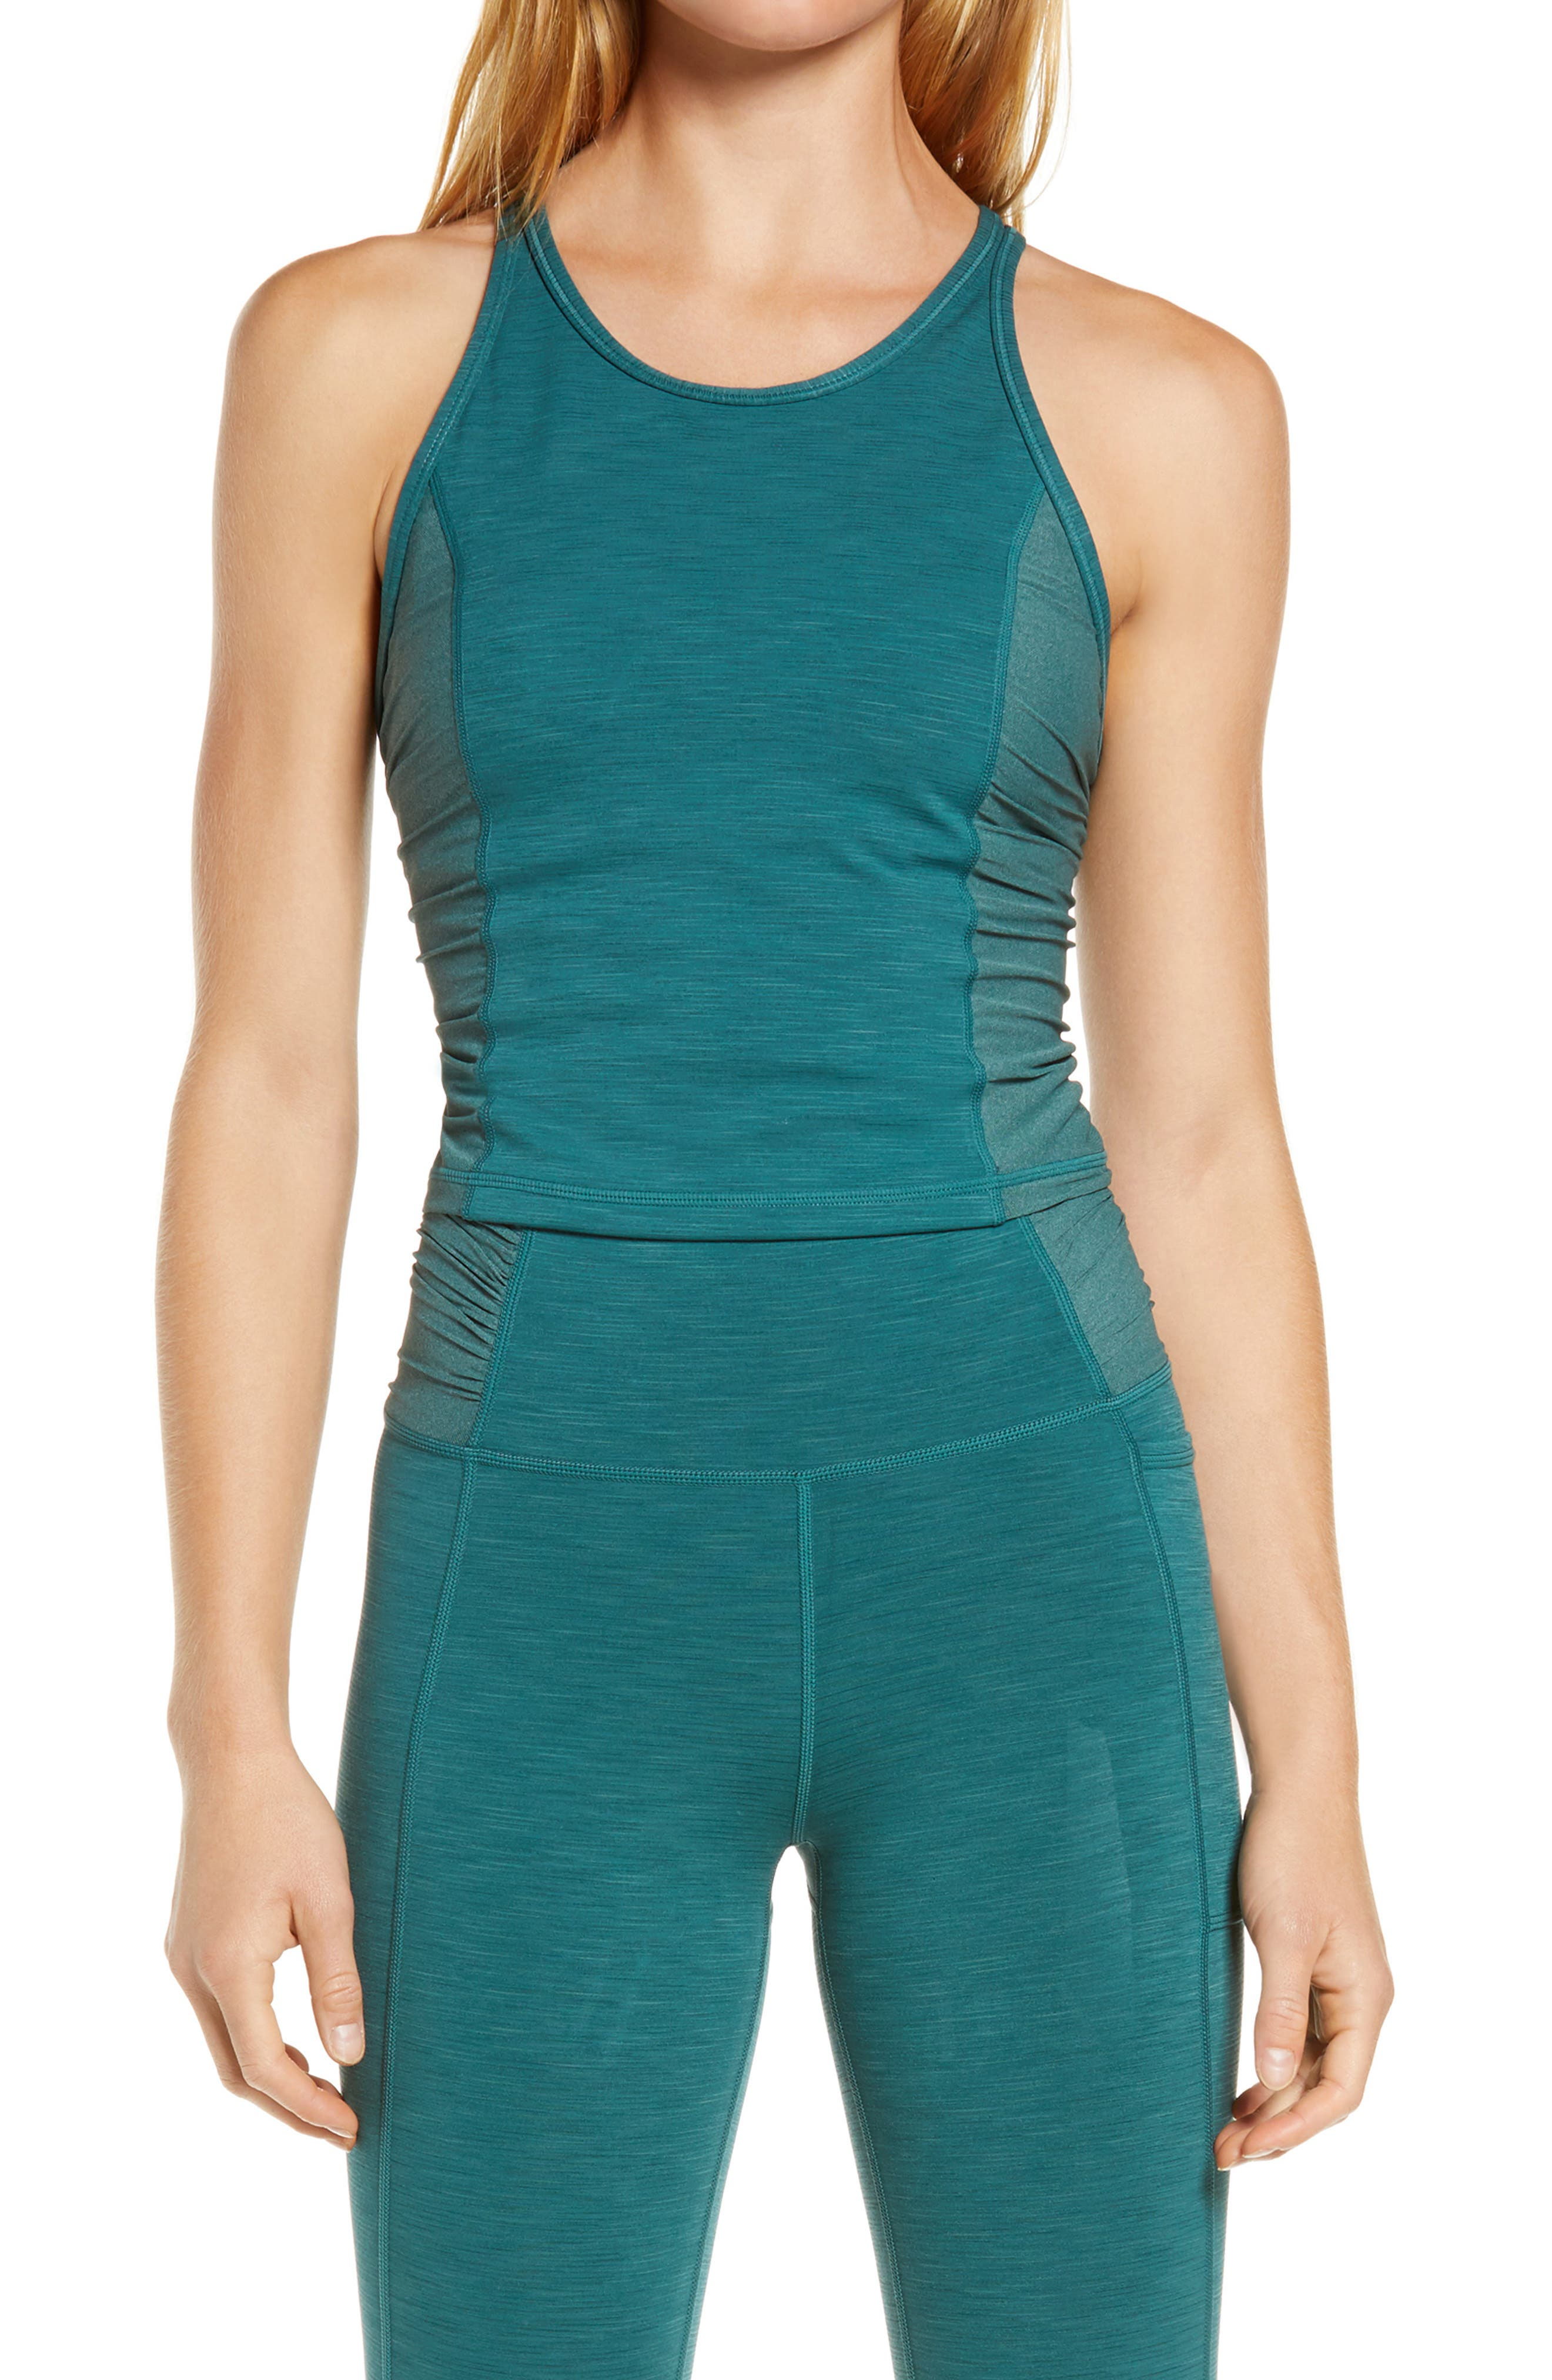 A tank cut from sculpting, sweat-wicking fabric has a strappy back for full-range motion and softly gathered sides of mesh for breathable comfort. Style Name: Sweaty Betty Super Sculpt Mesh Yoga Tank. Style Number: 6091352. Available in stores.